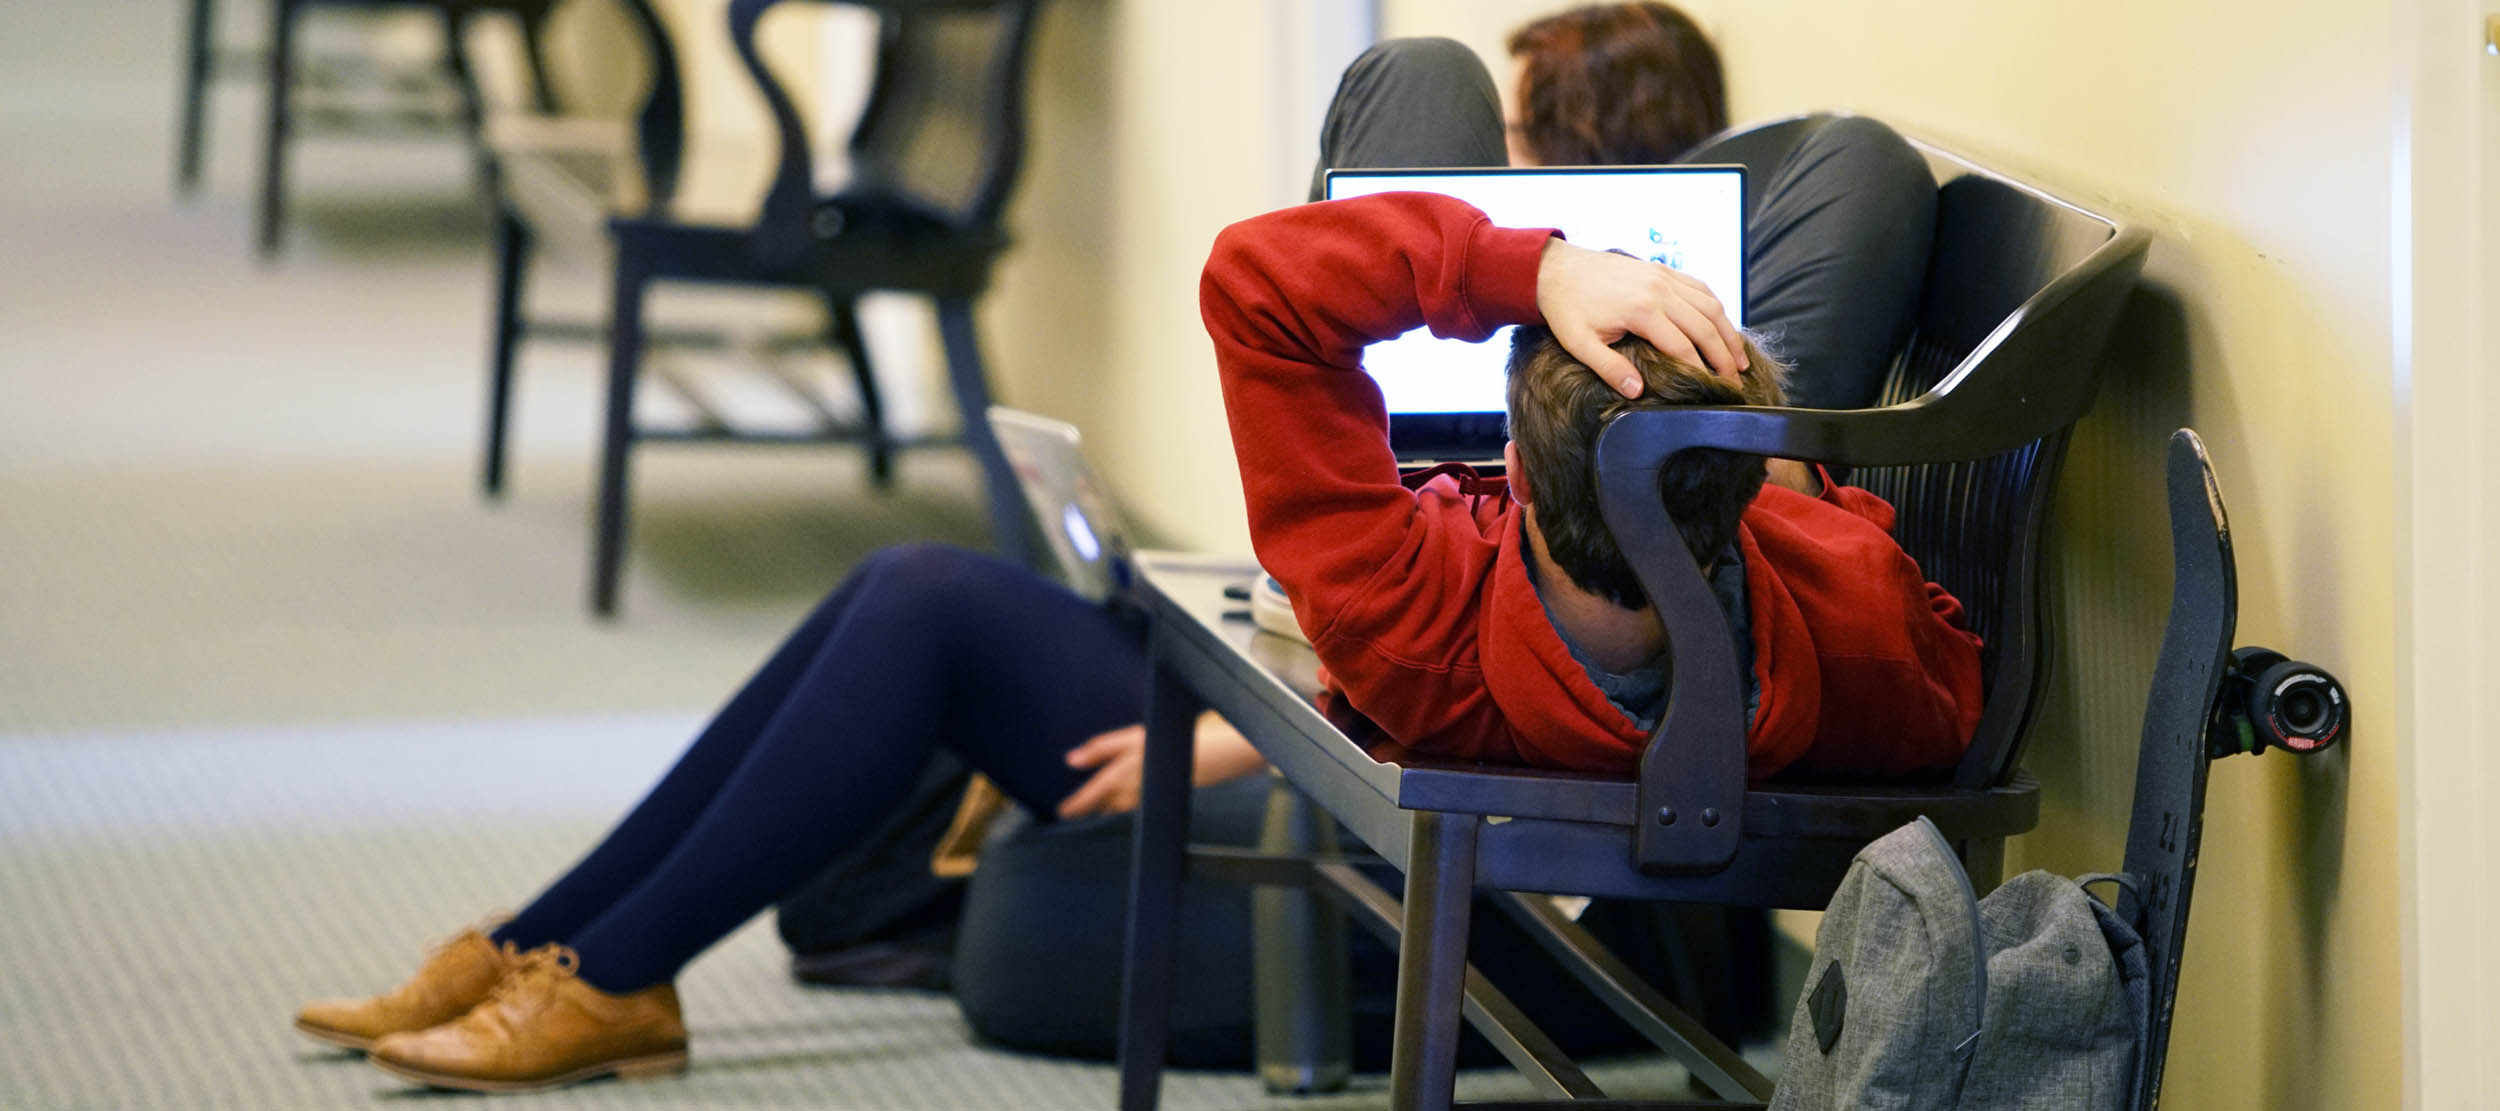 A student uses his laptop while reclined on a bench in a second-floor hallway